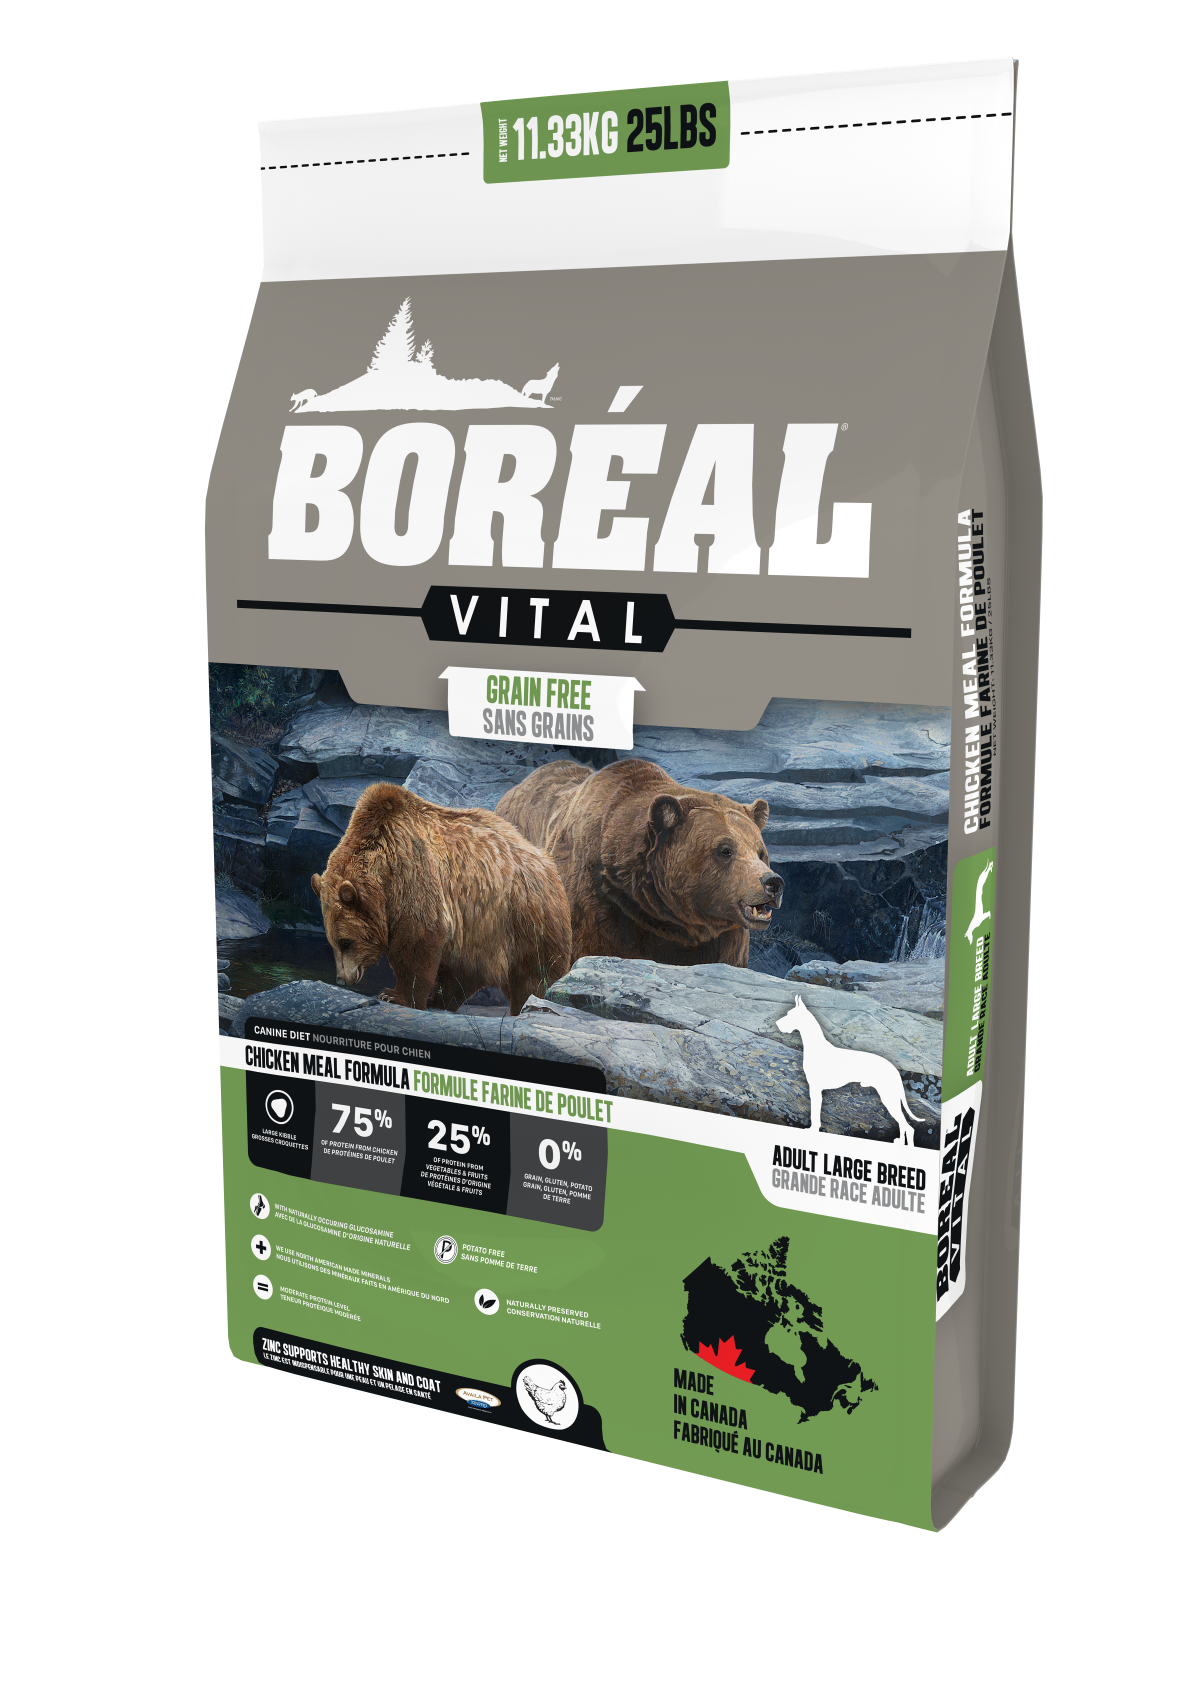 Boreal Vital Large Breed Chicken Meal - Grain Free Dry Dog Food 25 Pound Bag at NJPetSupply.com